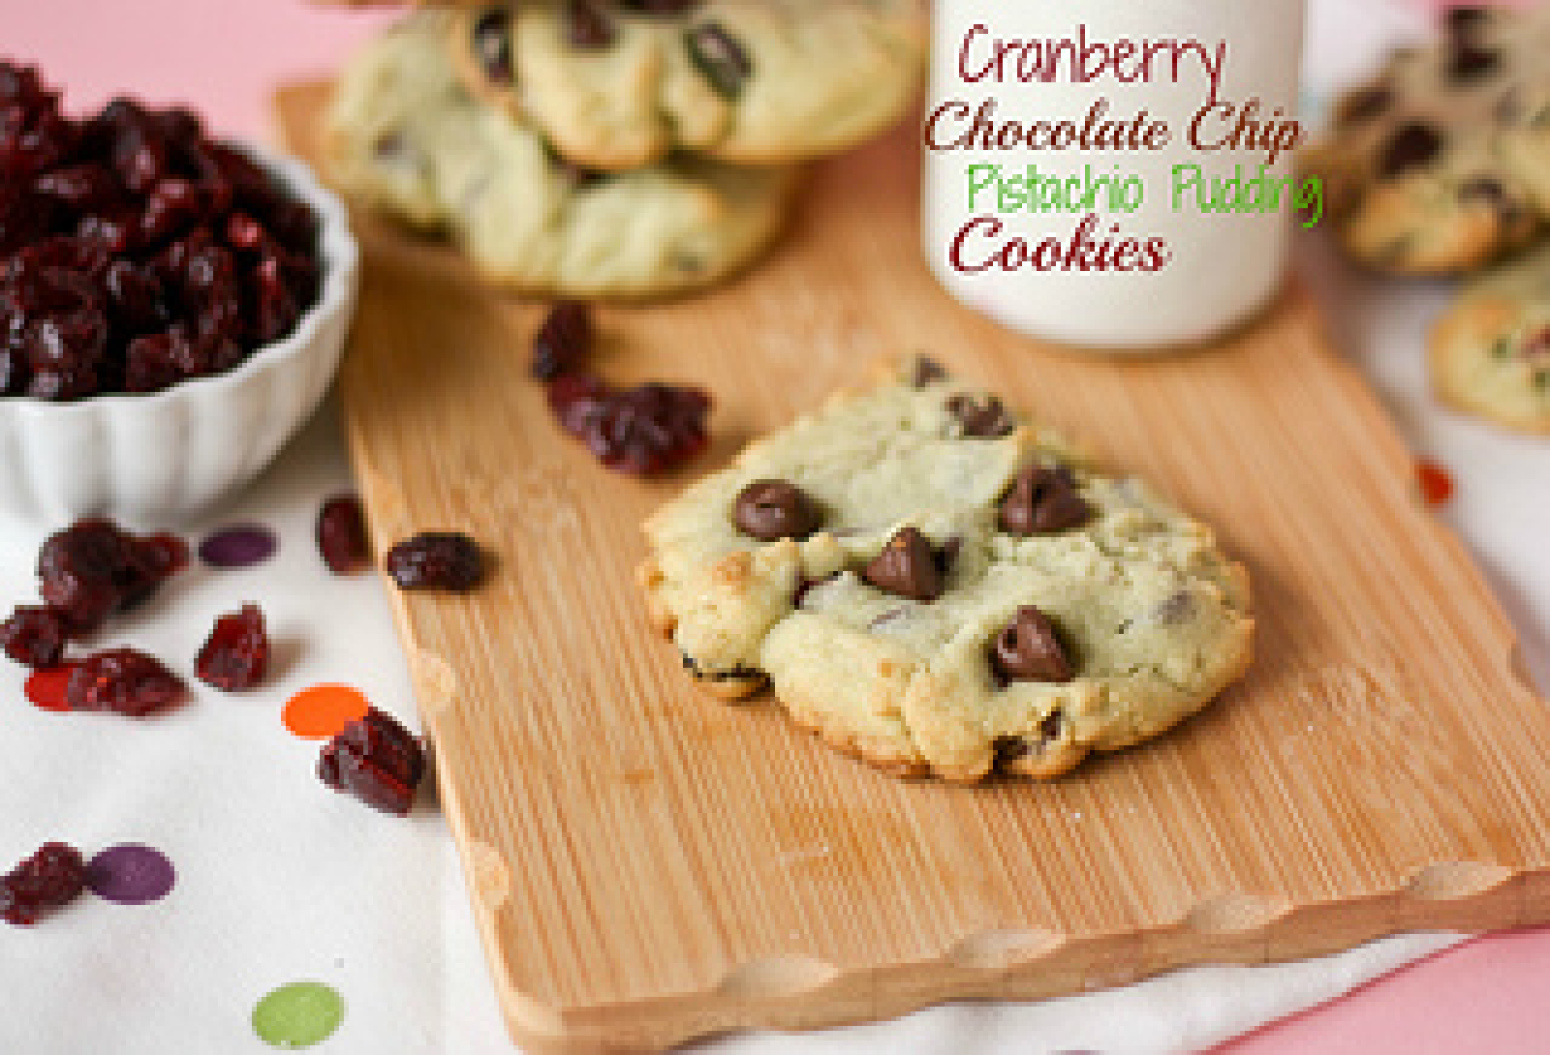 Cranberry Chocolate Chip Pistachio Pudding Cookies Recipe | Just A ...